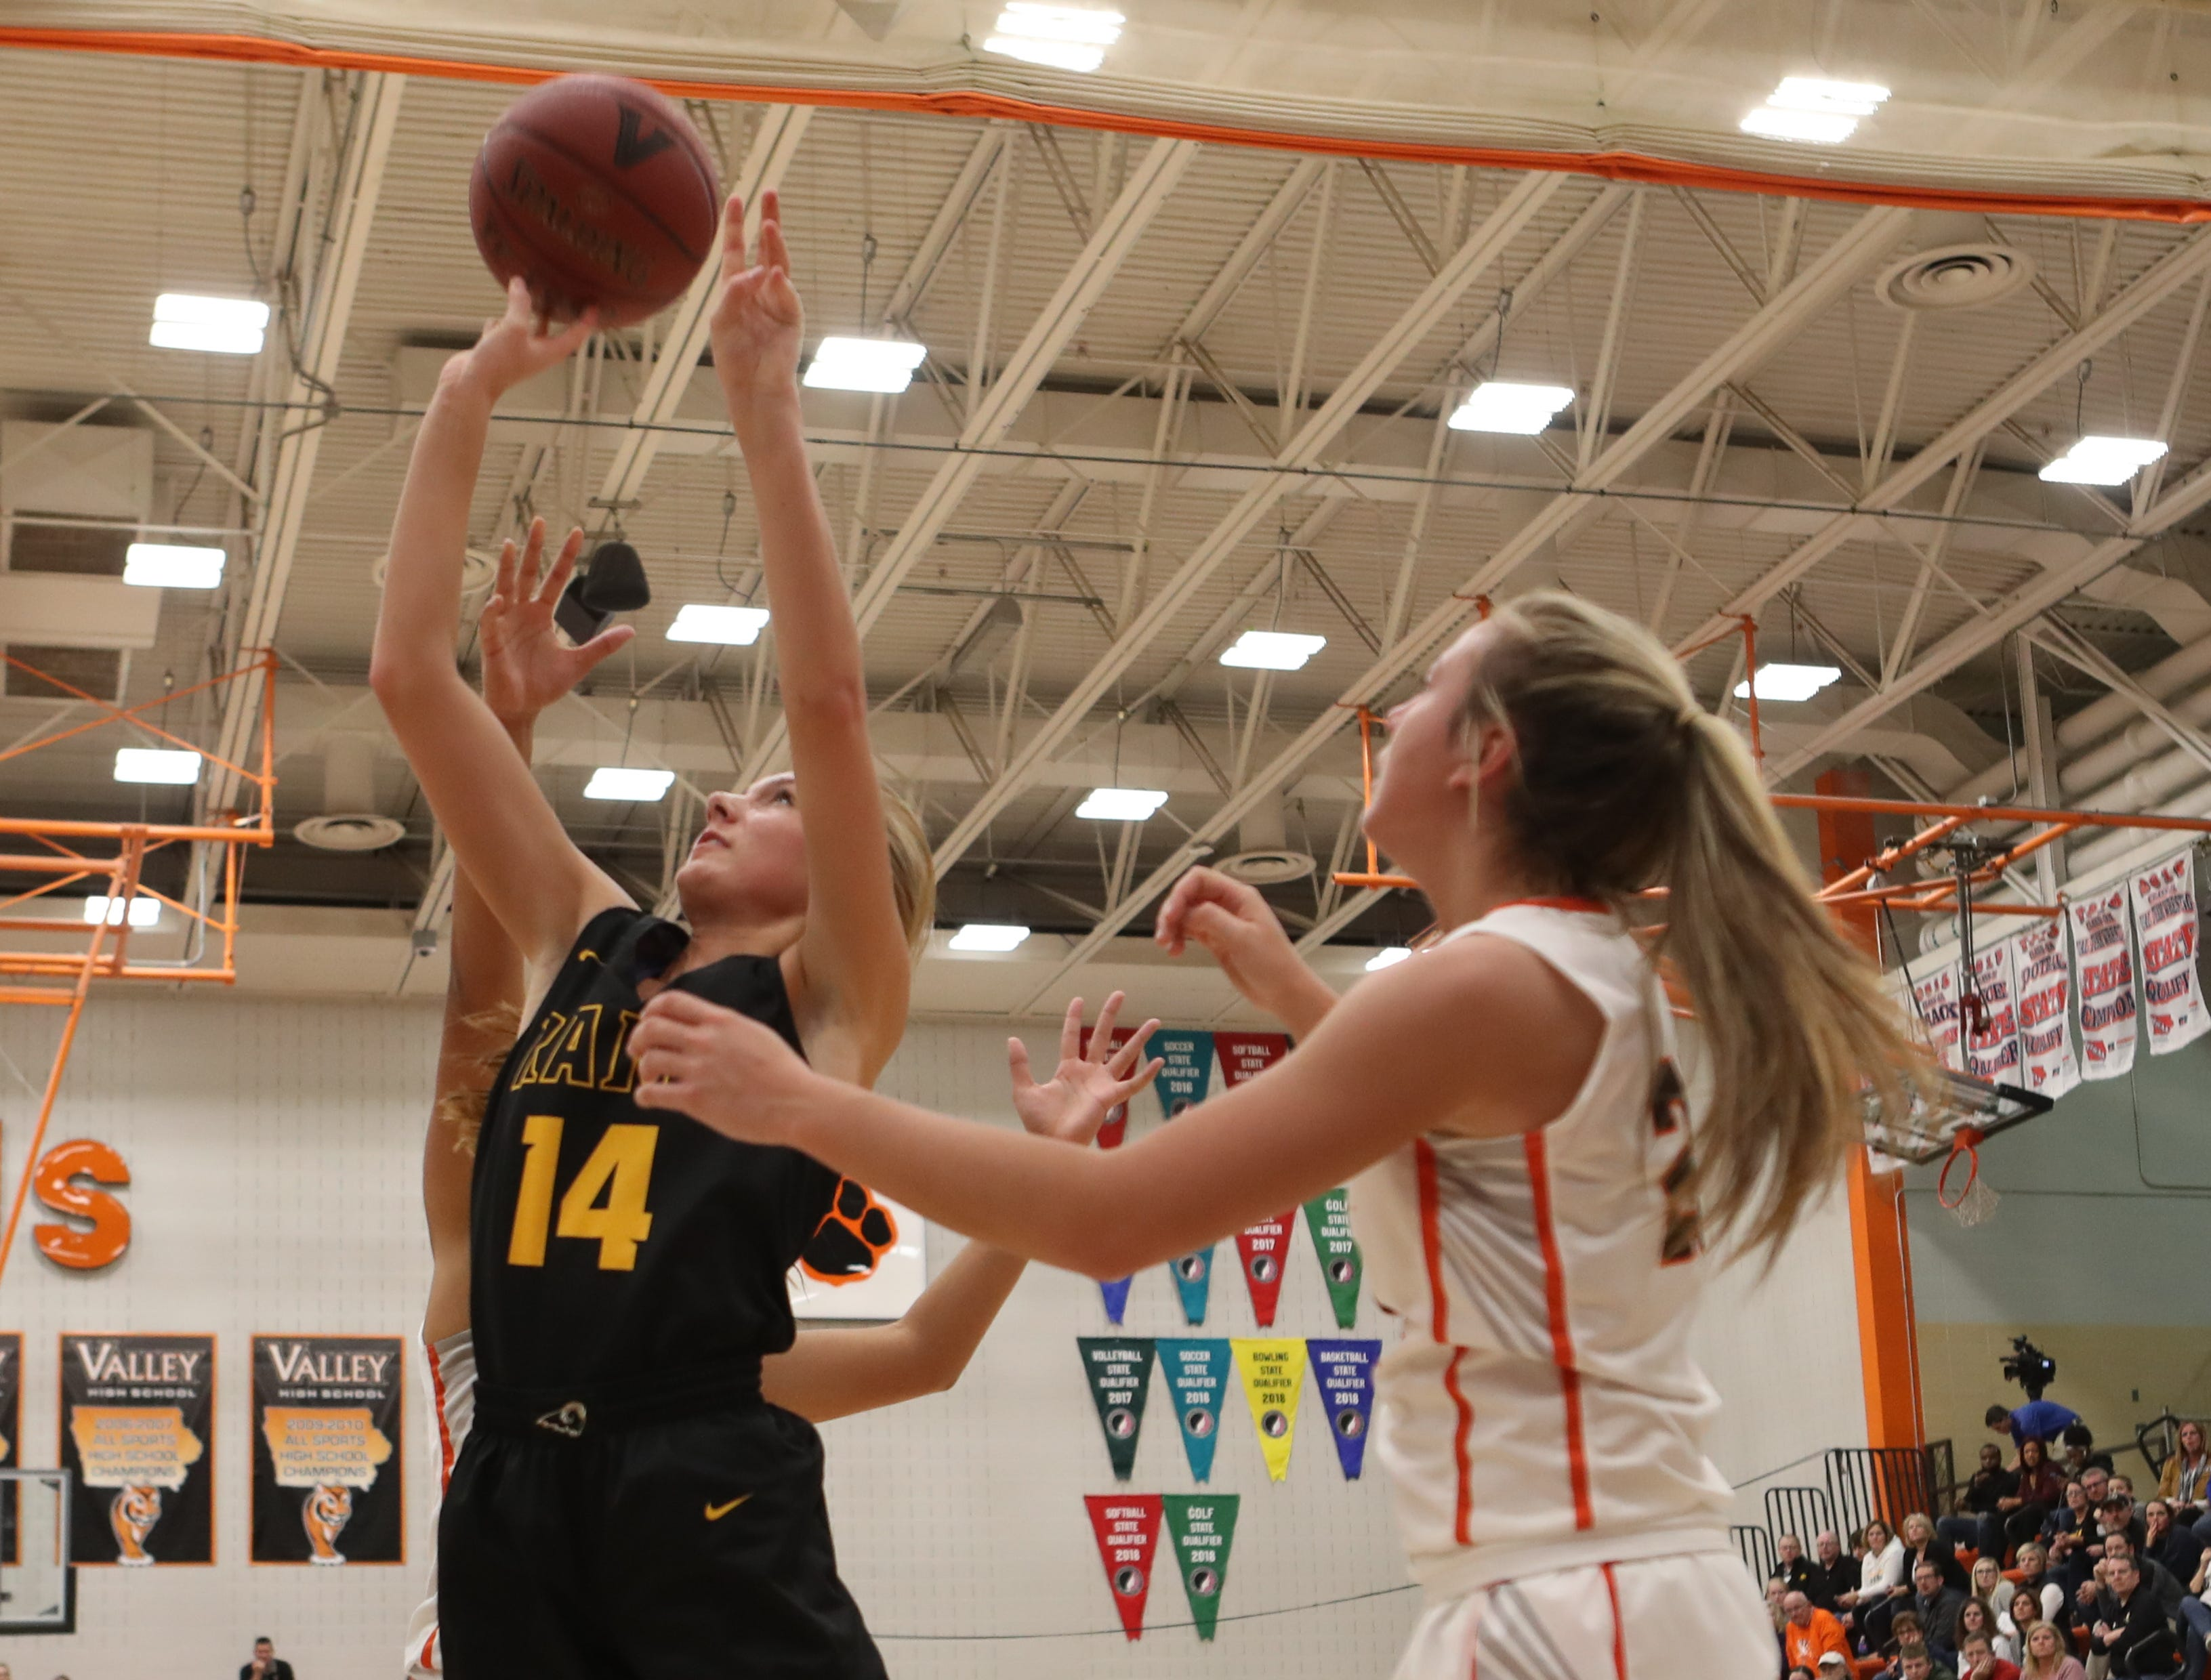 Southeast Polk Rams' Jessica Stuart (14) shoots against the Valley Tigers during a girls basketball game at Valley High School on Jan. 11, 2019.